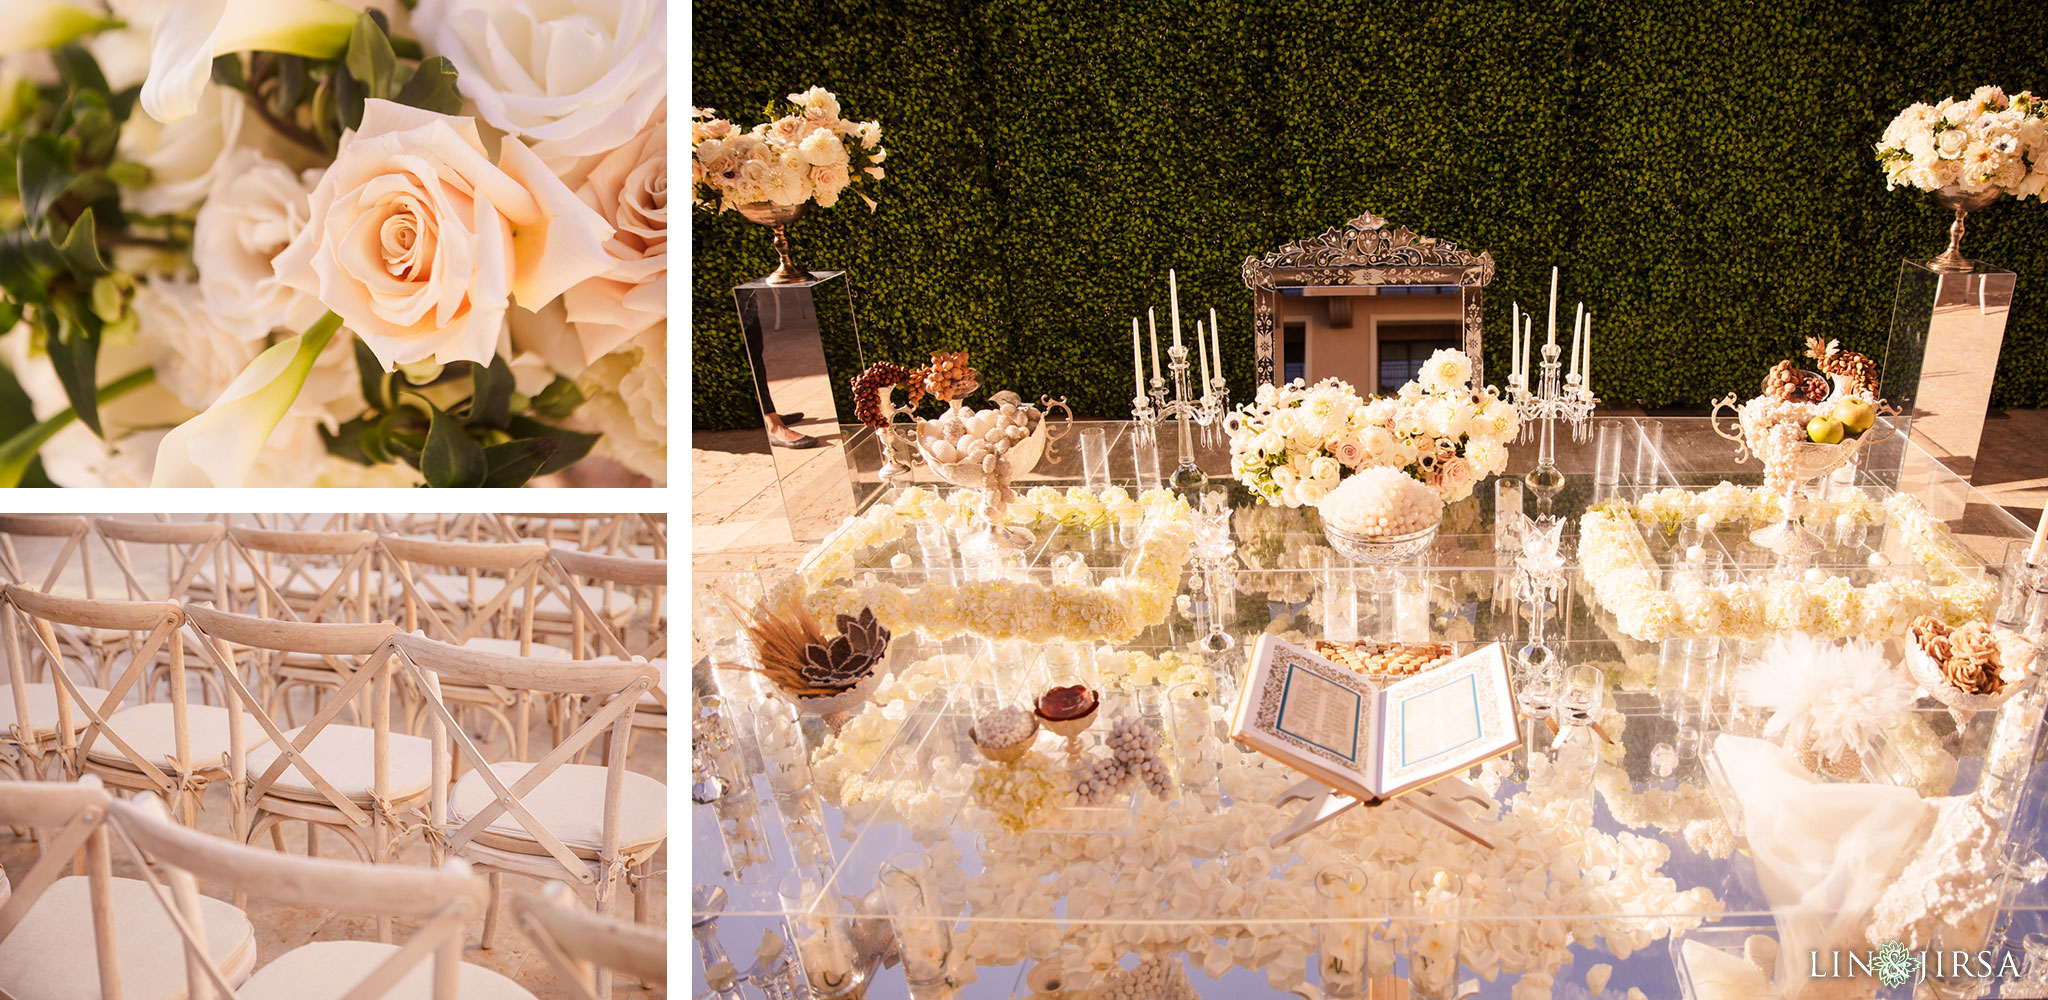 21 montage beverly hills persian wedding photography